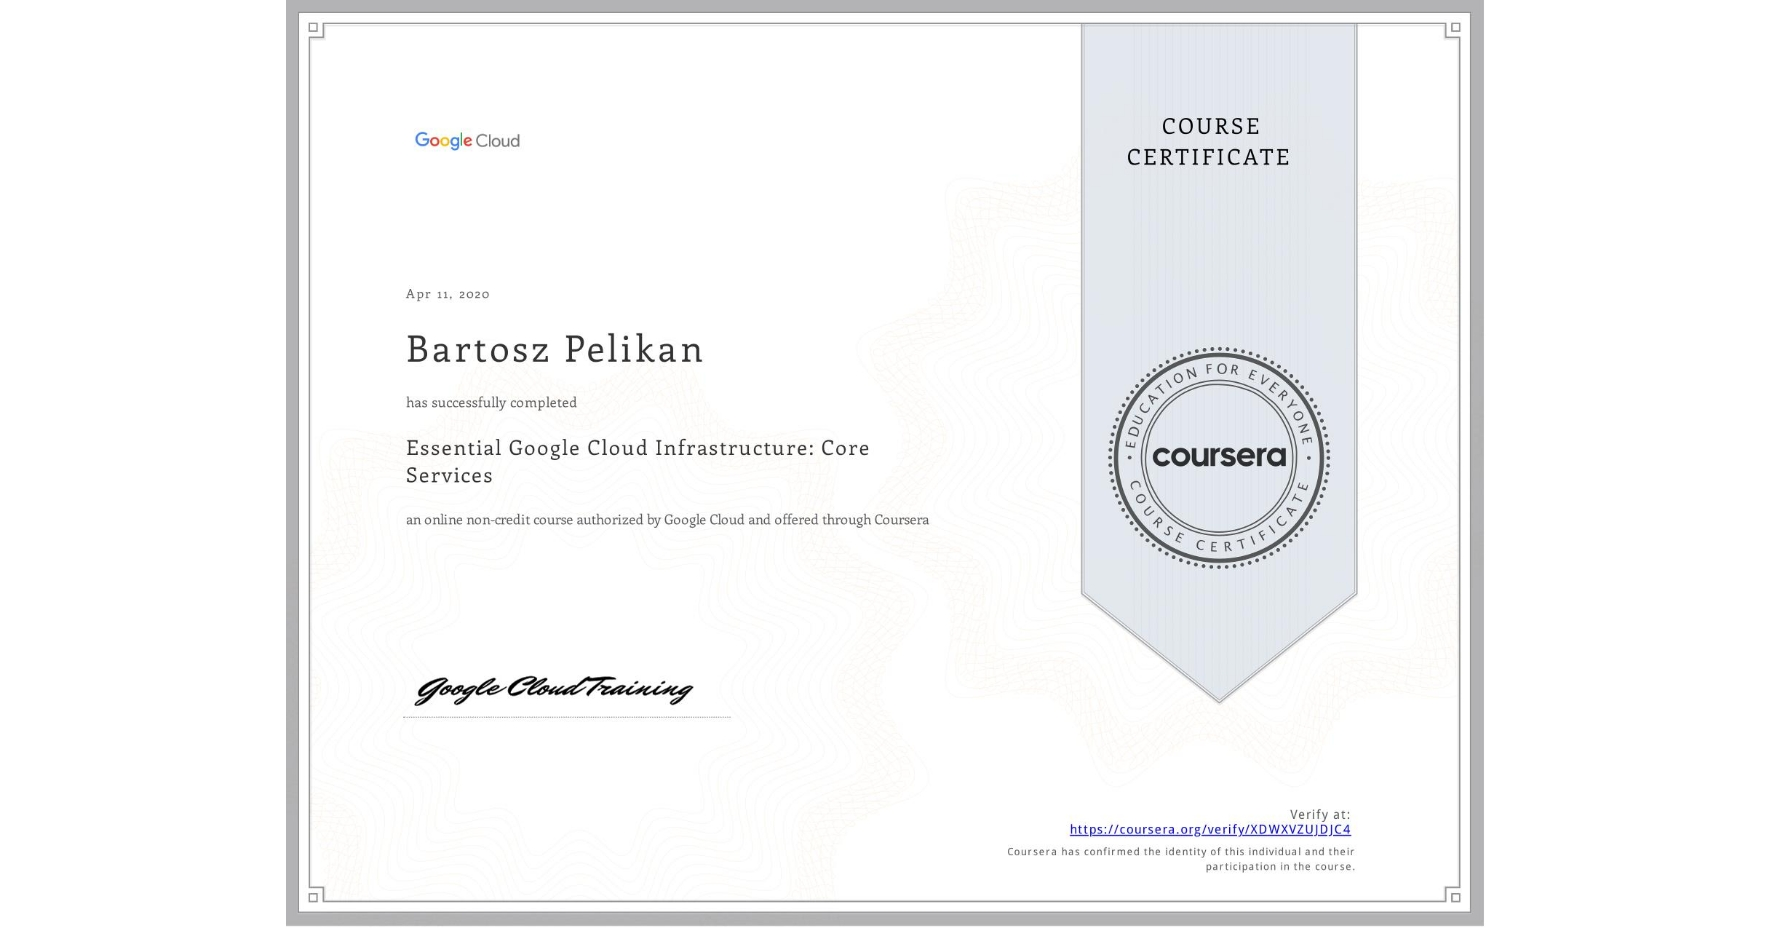 View certificate for Bartosz Pelikan, Essential Google Cloud Infrastructure: Core Services, an online non-credit course authorized by Google Cloud and offered through Coursera